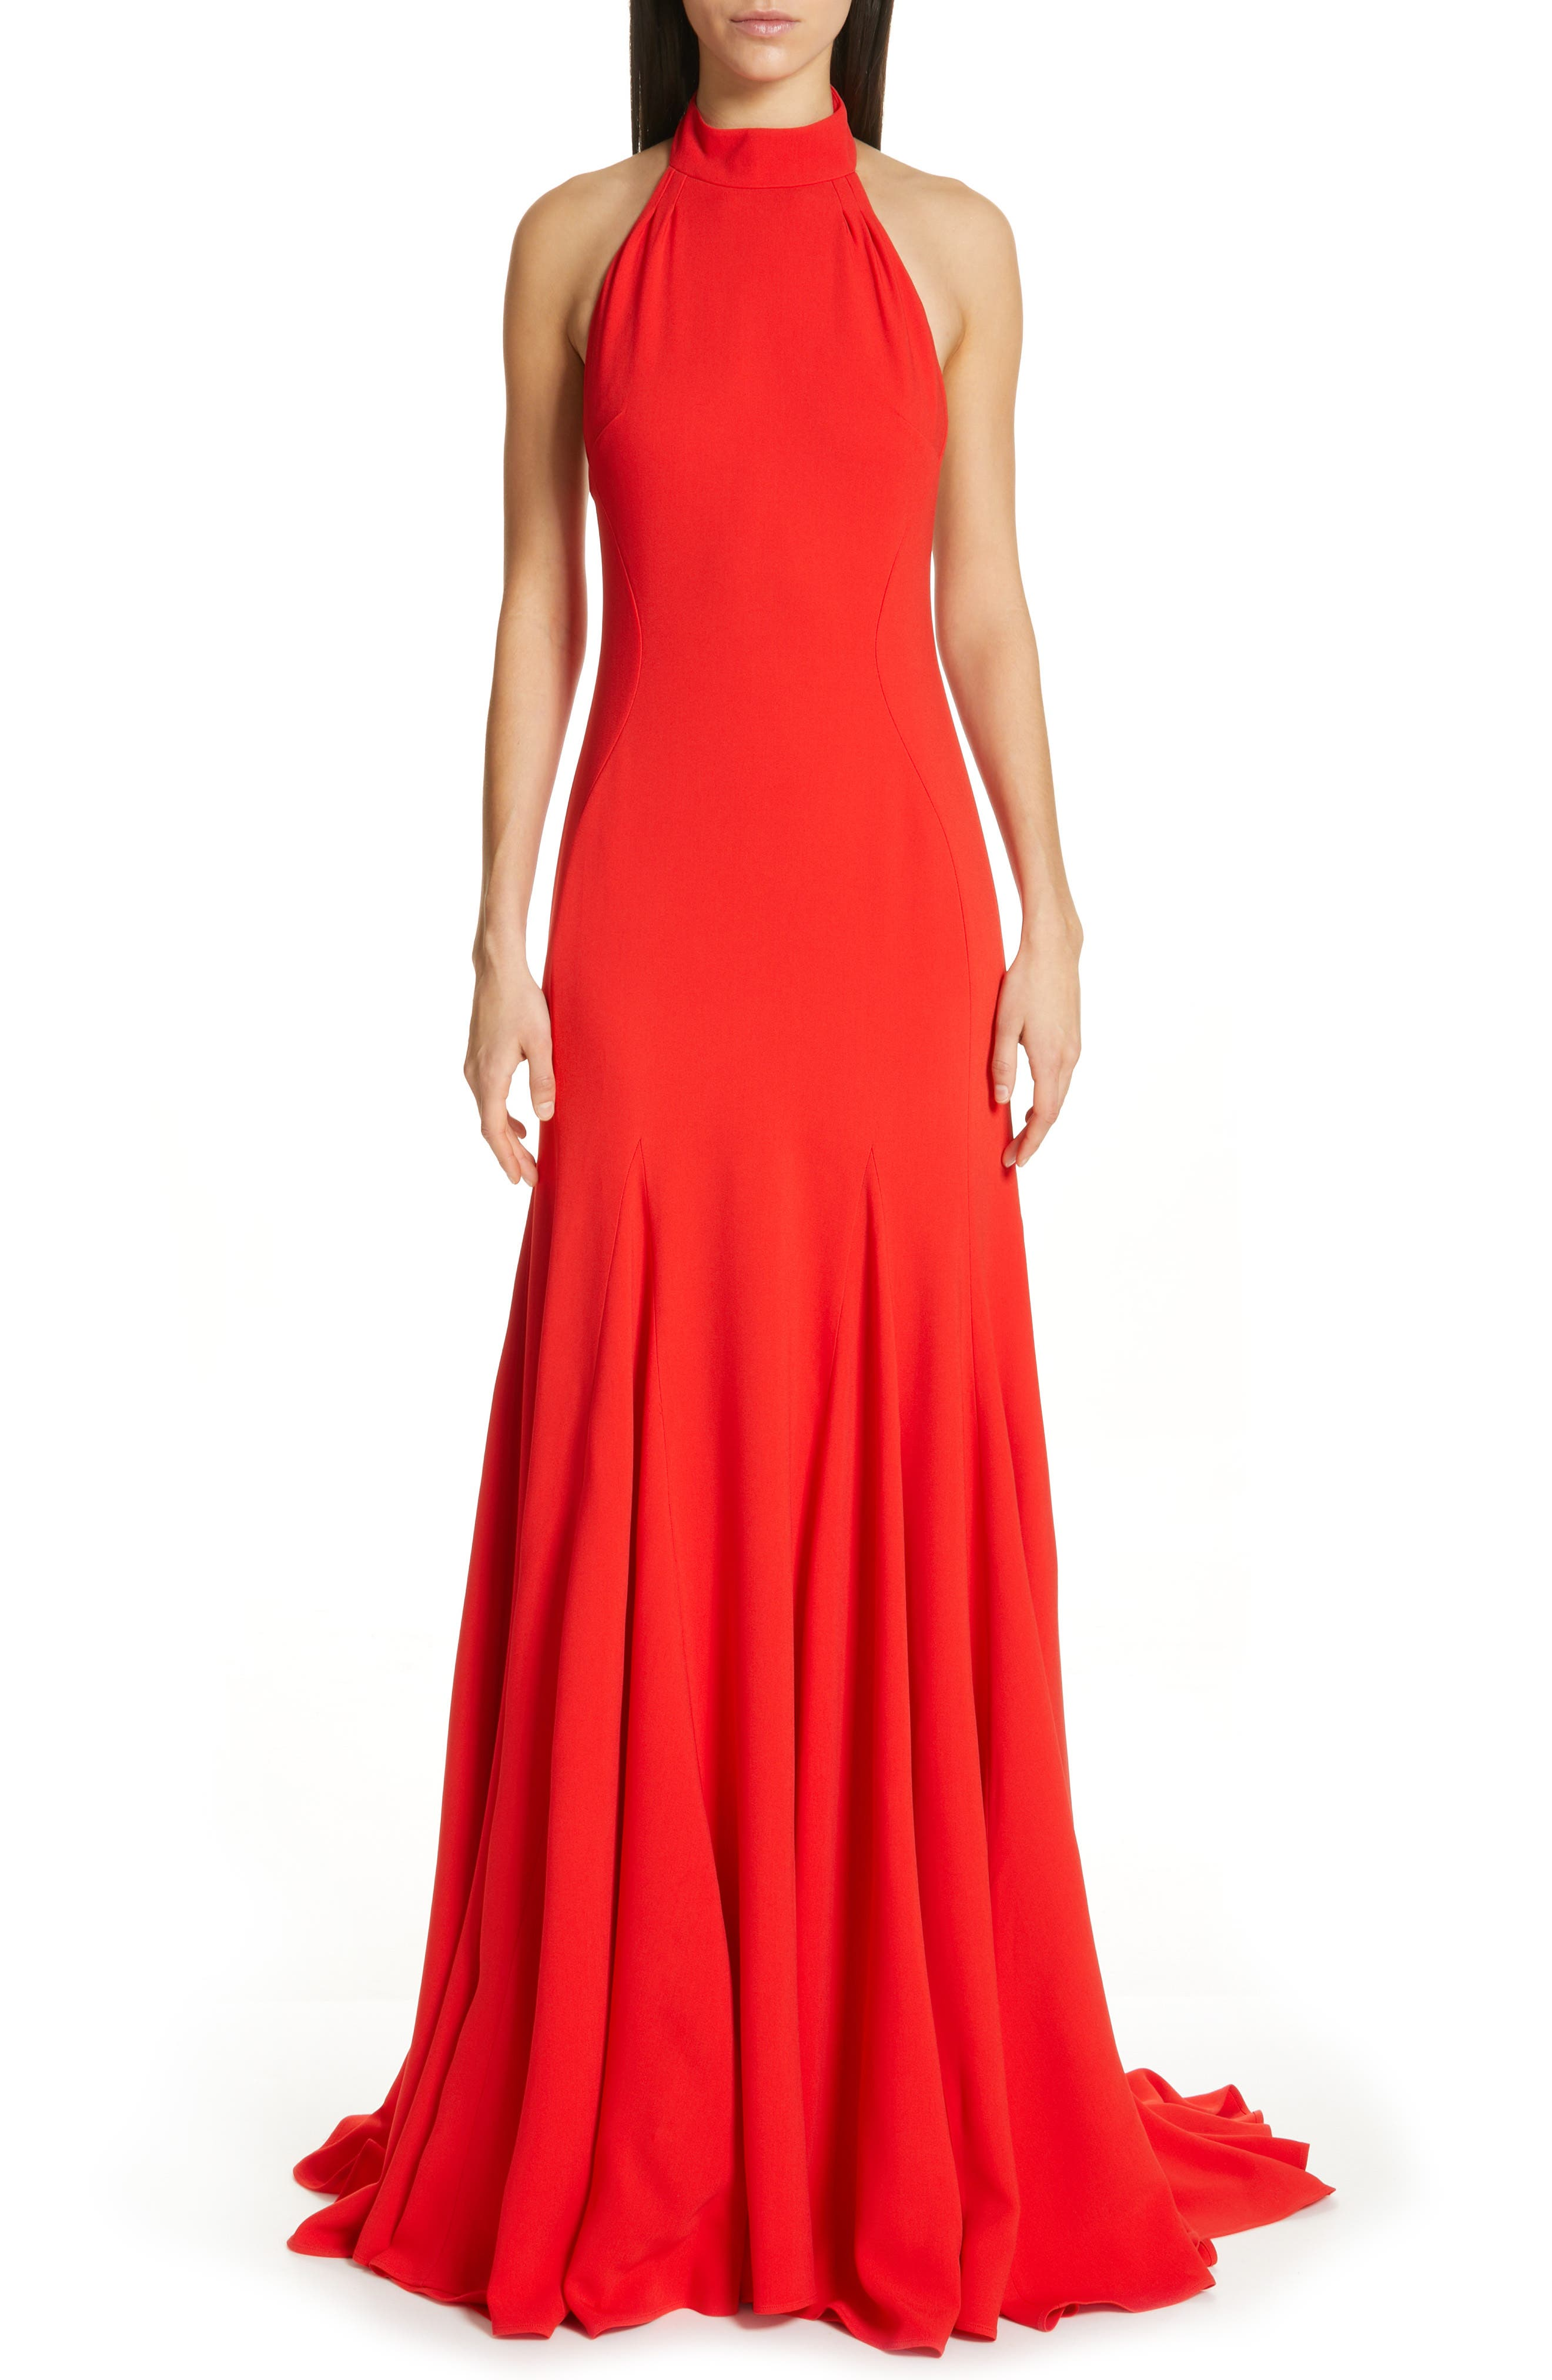 Stella Mccartney Magnolia Halter Trumpet Gown, 6 IT - Red